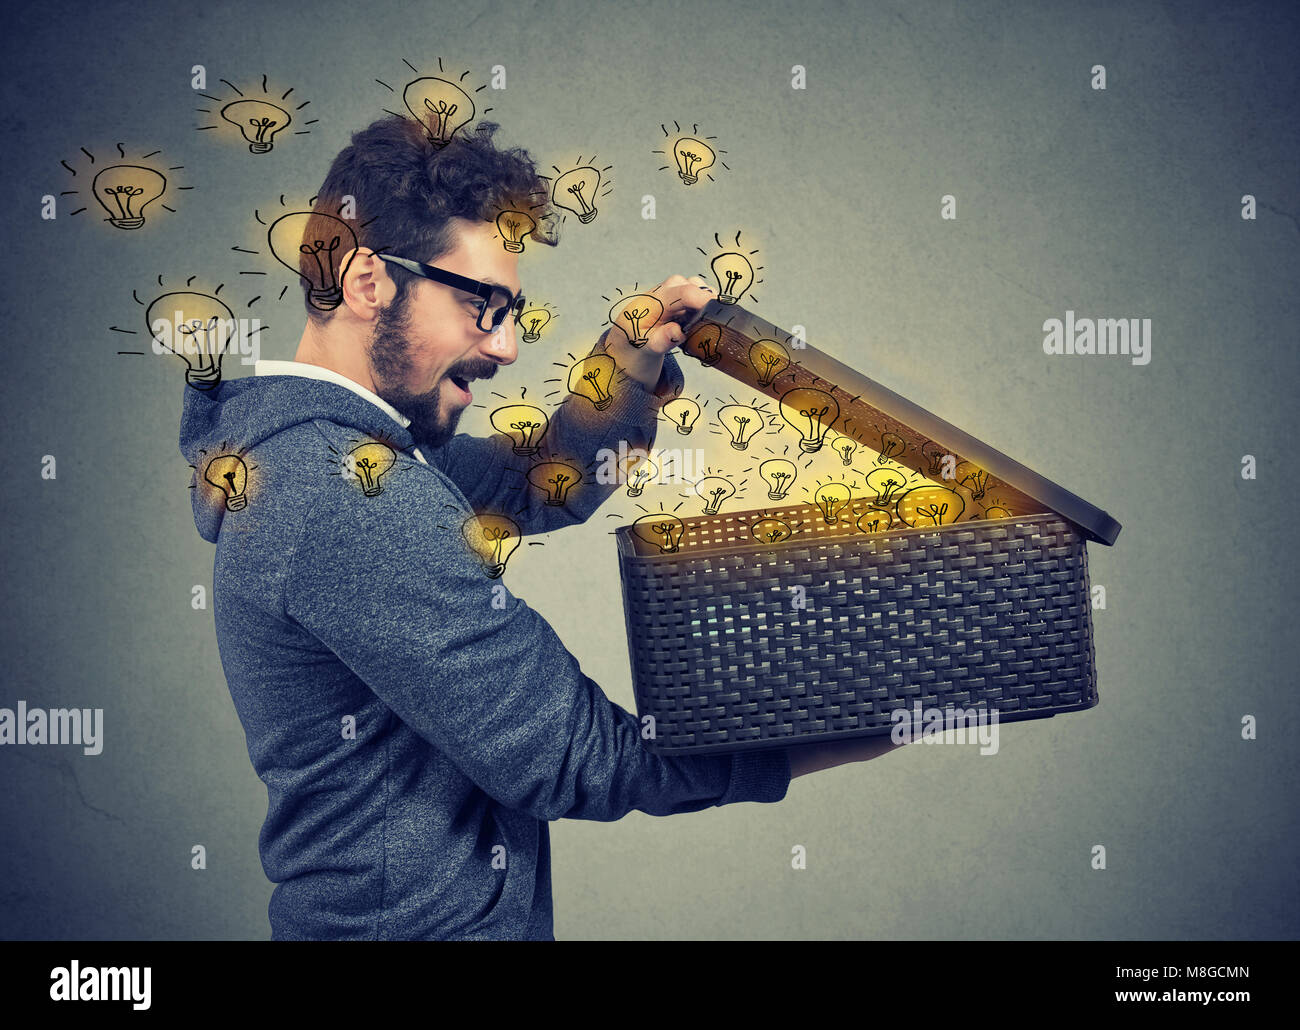 Happy surprised man opening a box with many bright light bulbs flying out - Stock Image